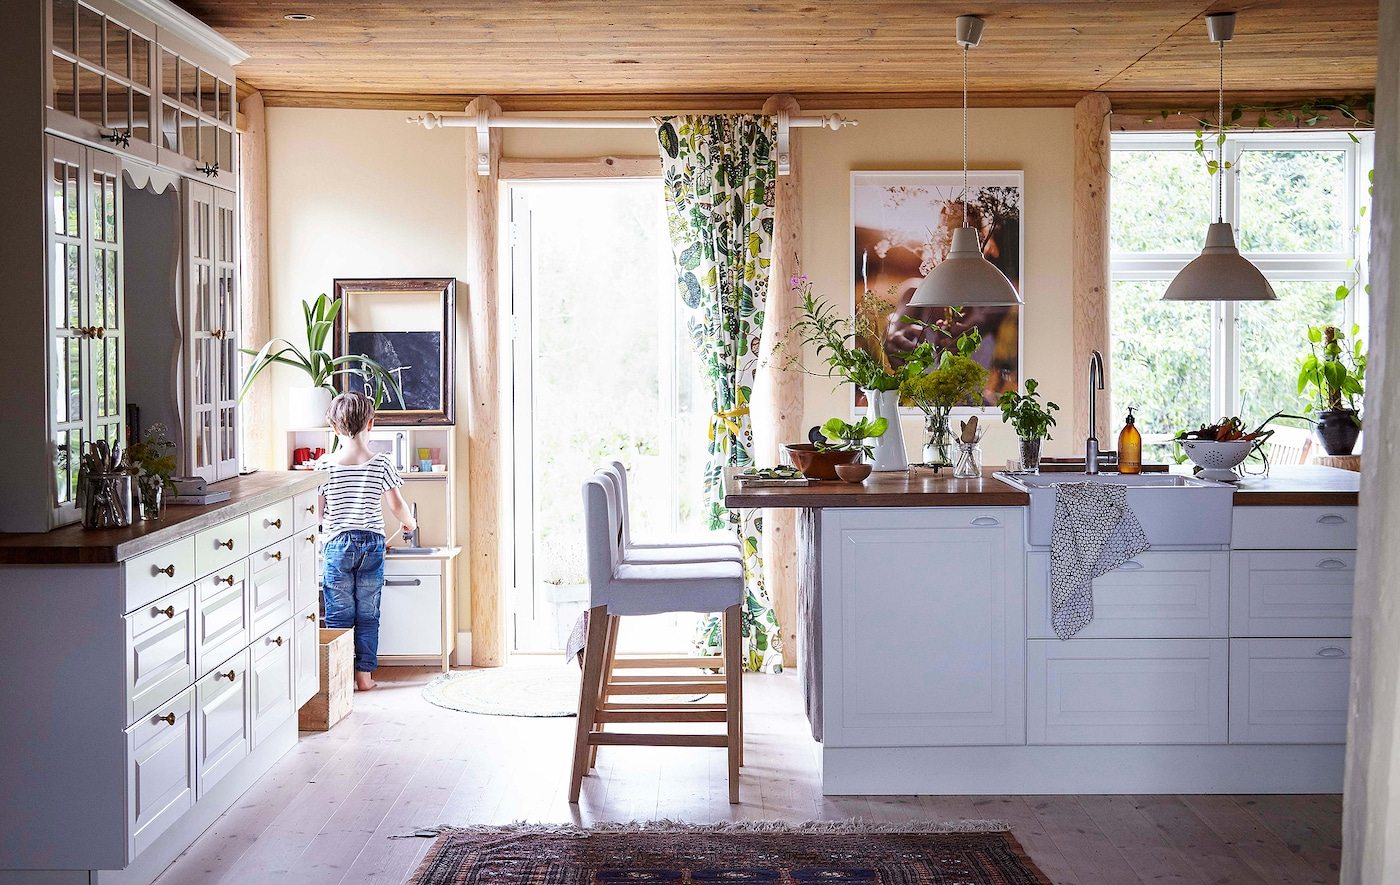 How to capture traditional country style in your home.